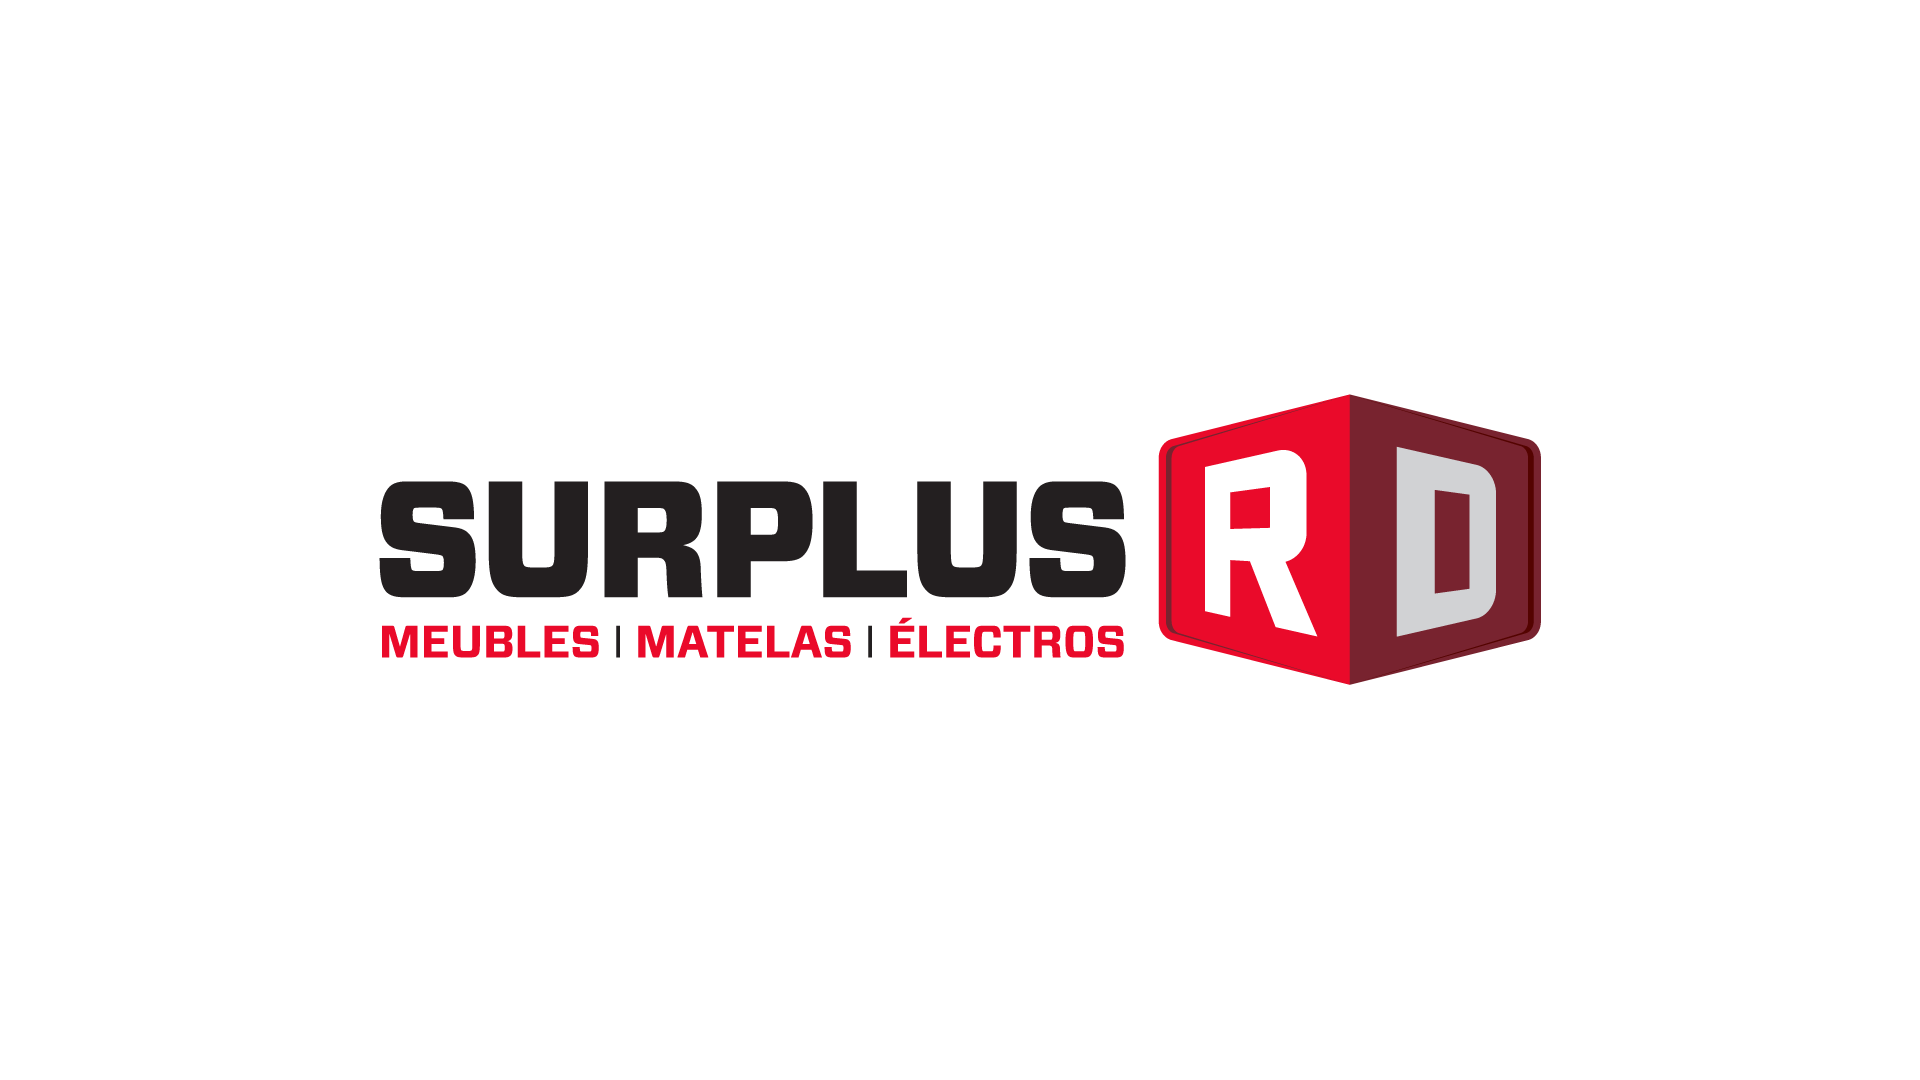 Surplus rd rdl